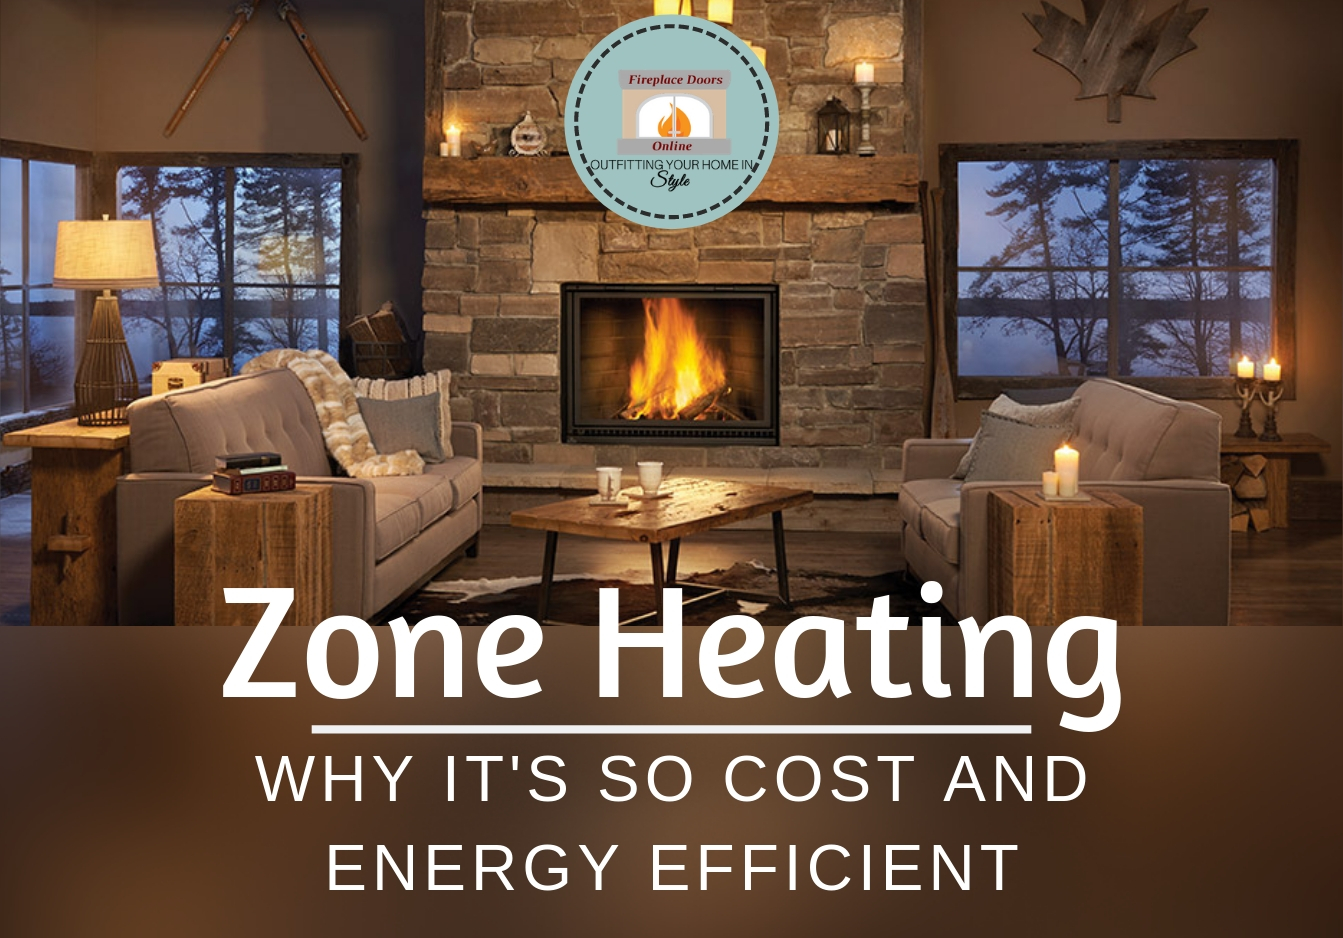 Zone Heating: Why it's so cost and energy efficients